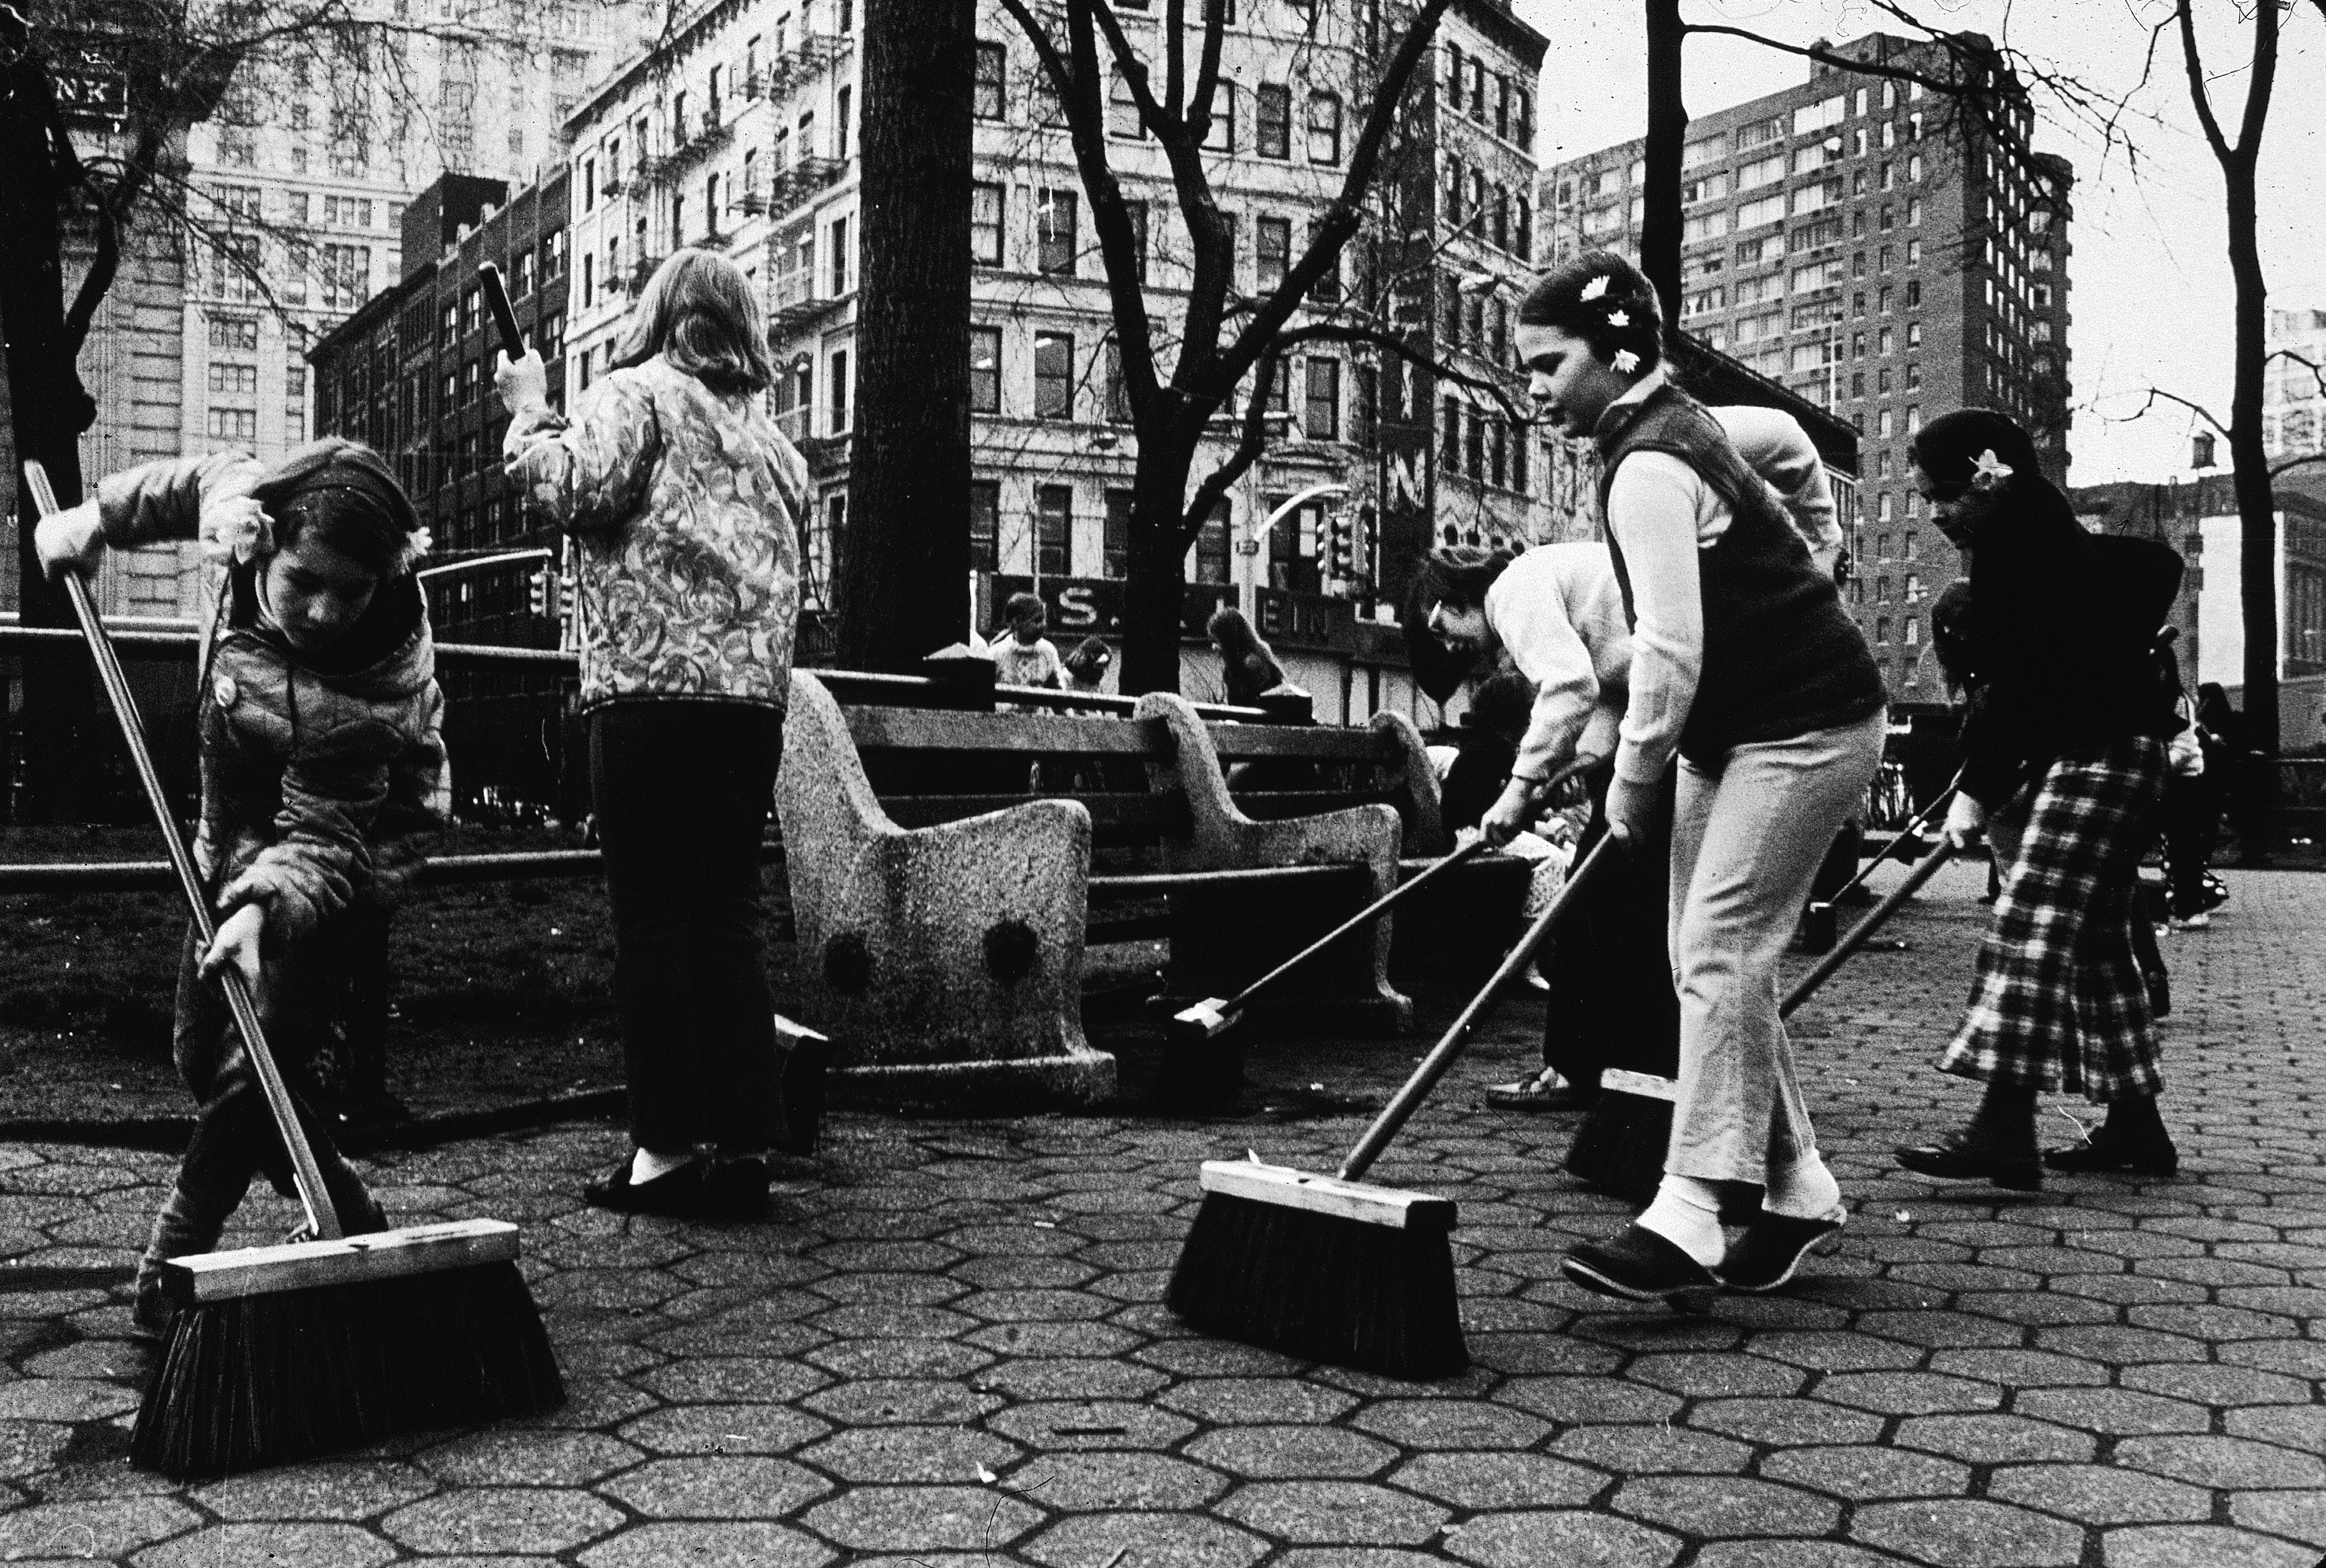 Children use push brooms to sweep a city park during Earth Day, New York City, 1970s. (Photo by Hulton Archive/Getty Images)